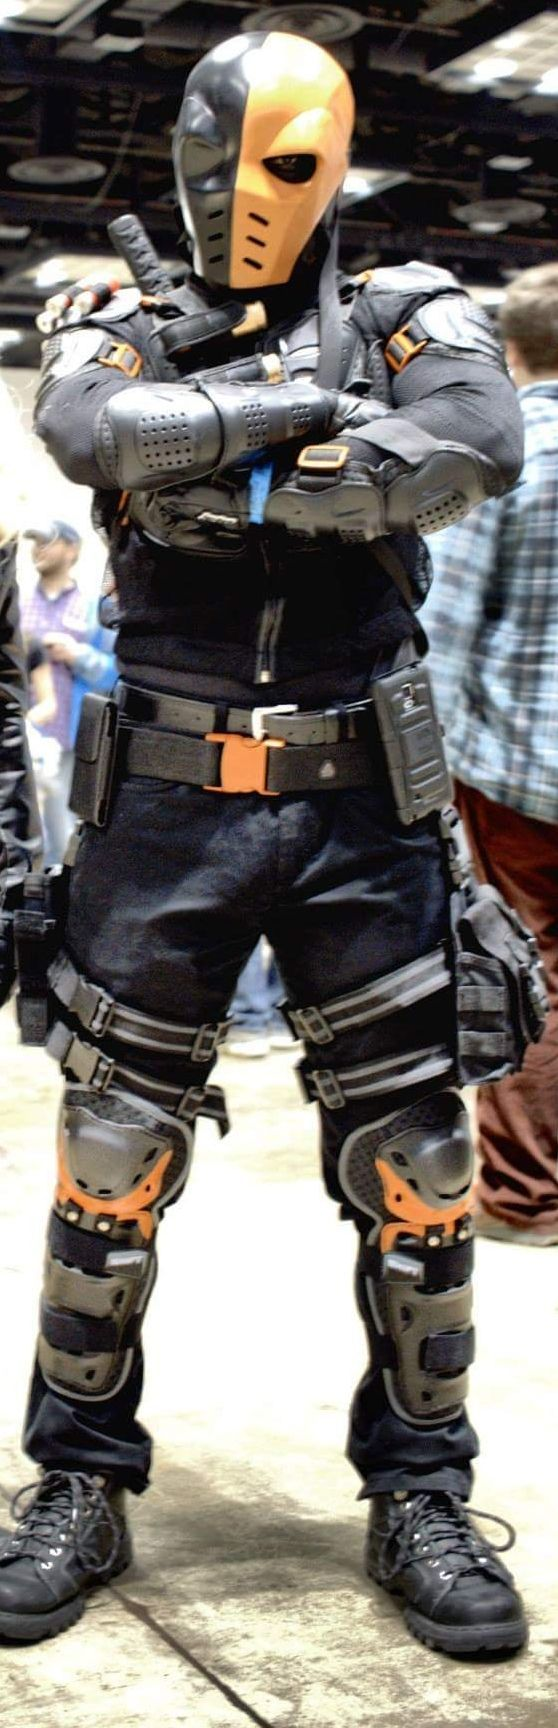 Deathstroke cosplay at Indiana Comic Con 2015 Slade Wilson #deadthstroke #cosplay #costume #marvel